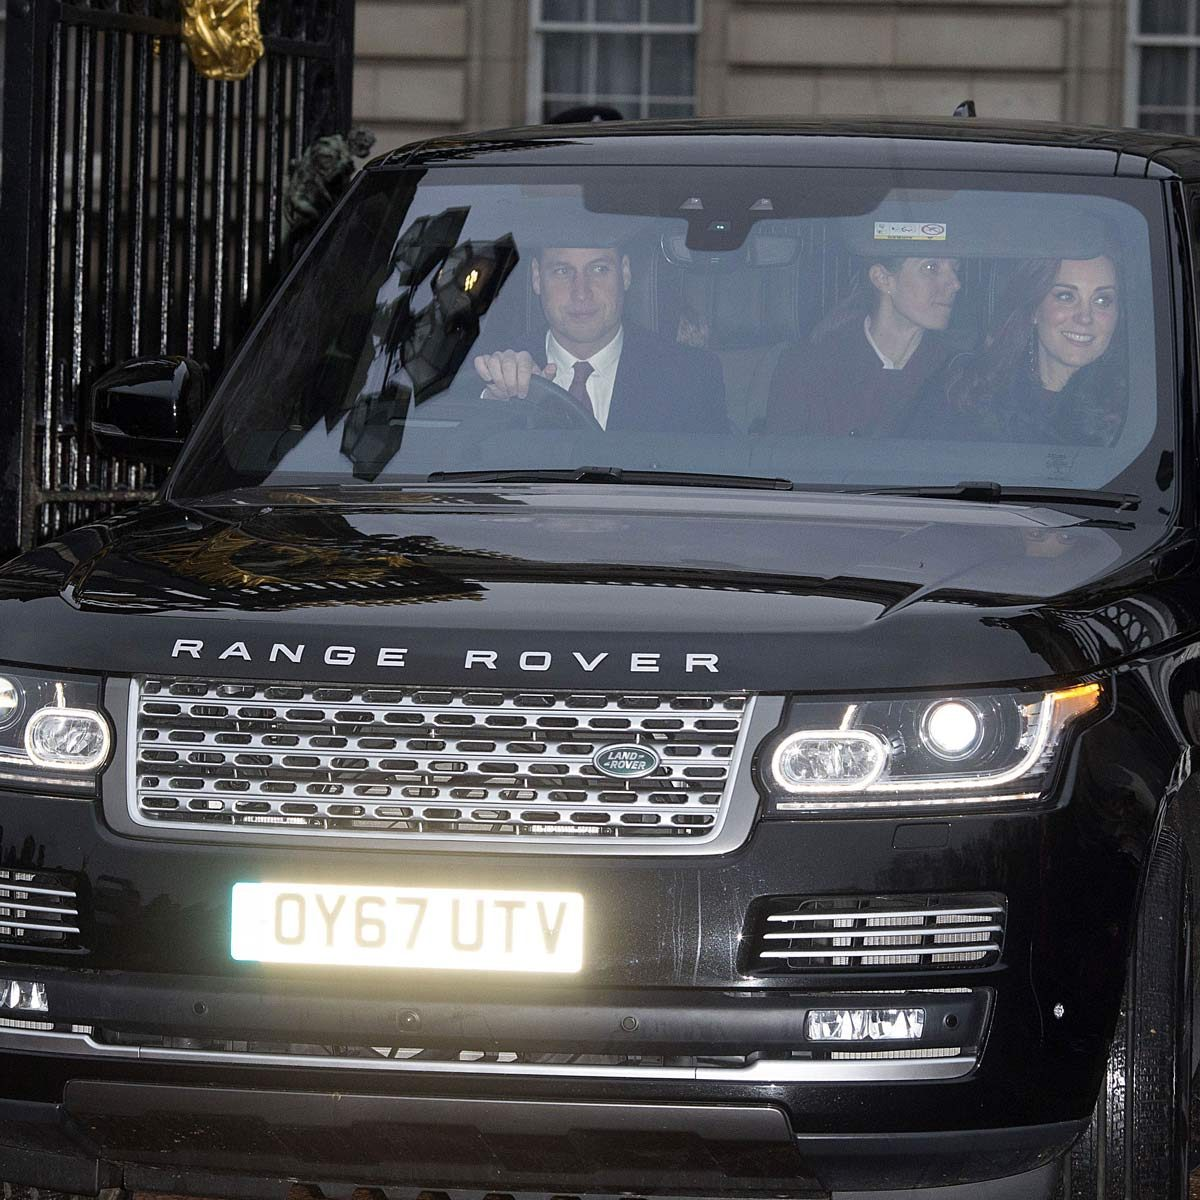 Prince William and Catherine Duchess of Cambridge drive in a black Range Rover